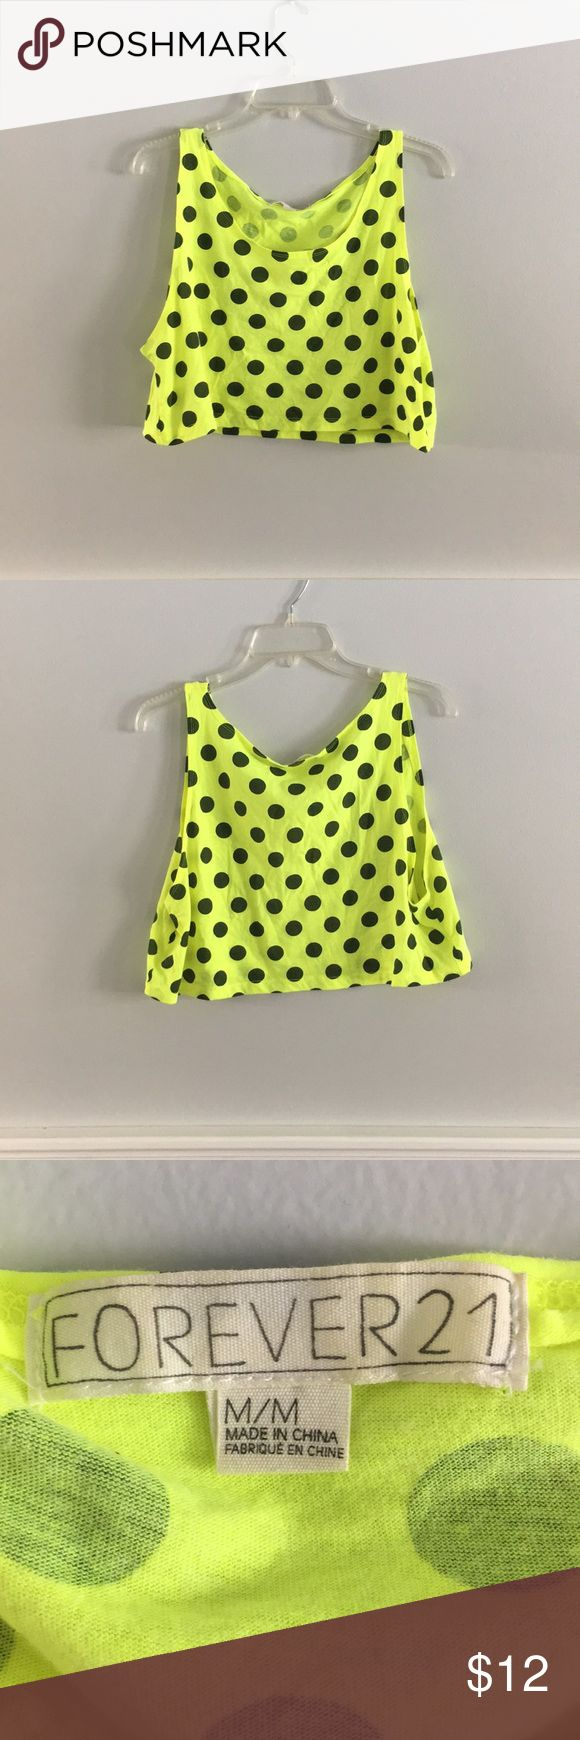 Women's crop top, tang top Women's summer crop top, tang top. Neon yellow with black poke a dots. Super fun! Only worn once. Forever 21 Tops Crop Tops